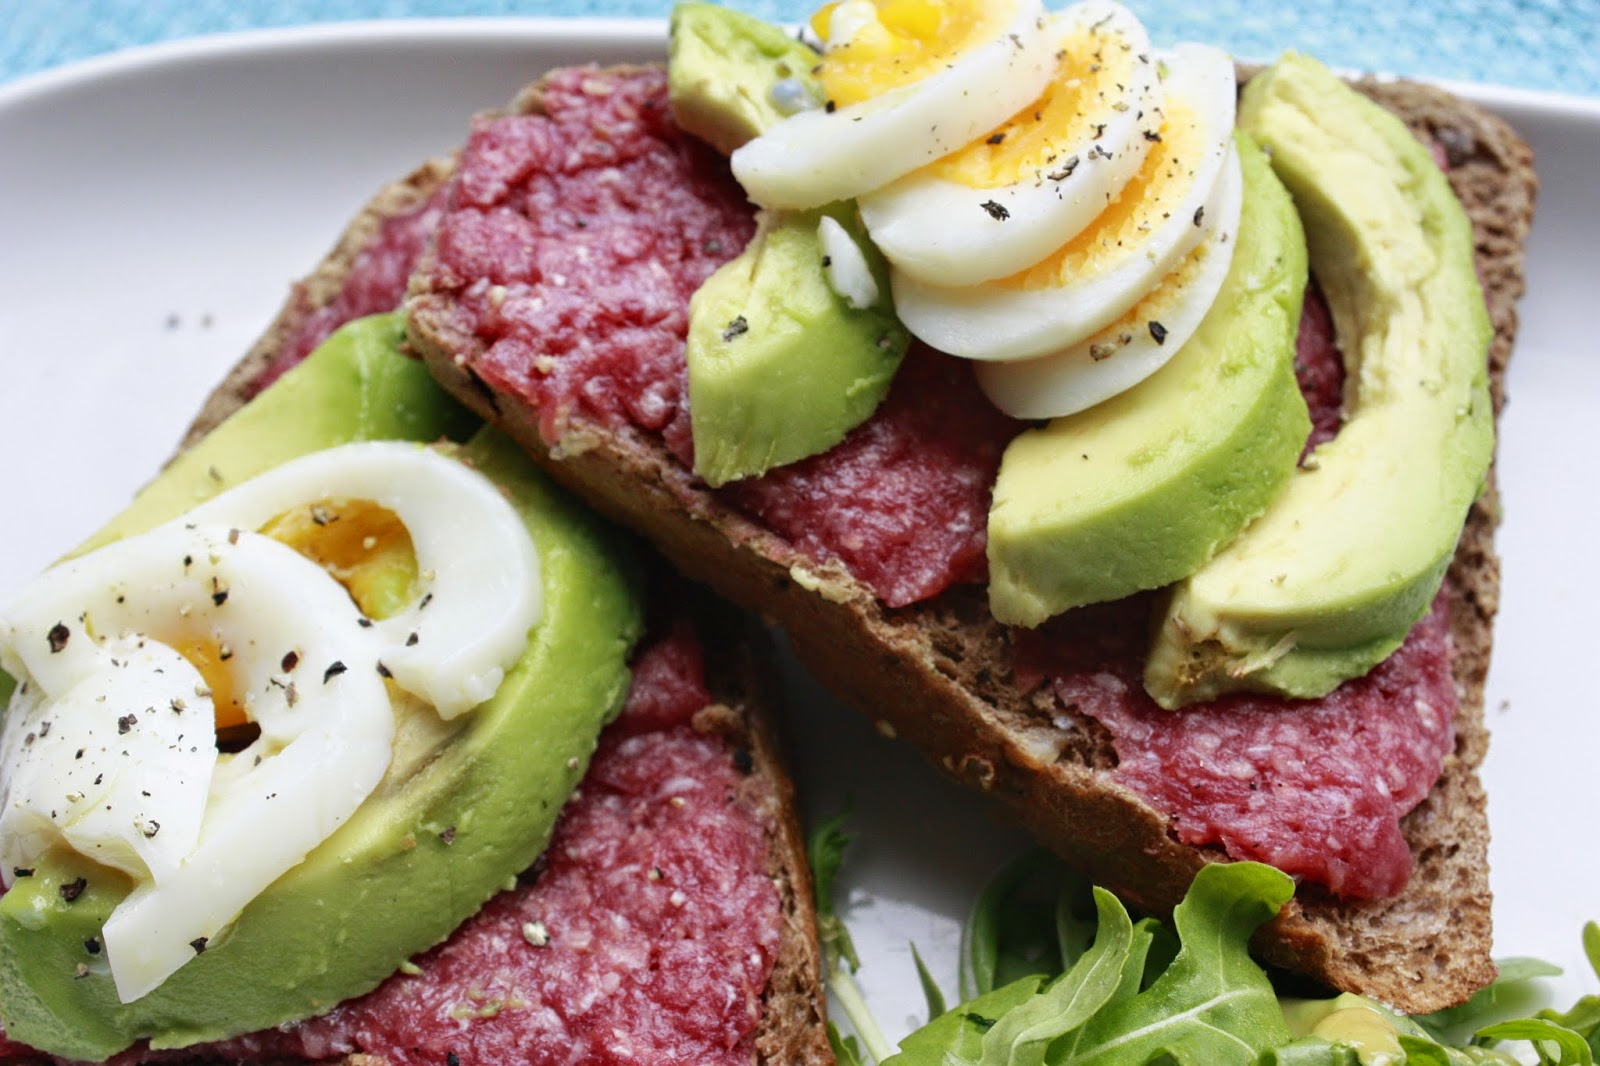 Broodje Avocado Ei Culi Column Lunch Time Broodje Ossenworst Met Avocado En Ei